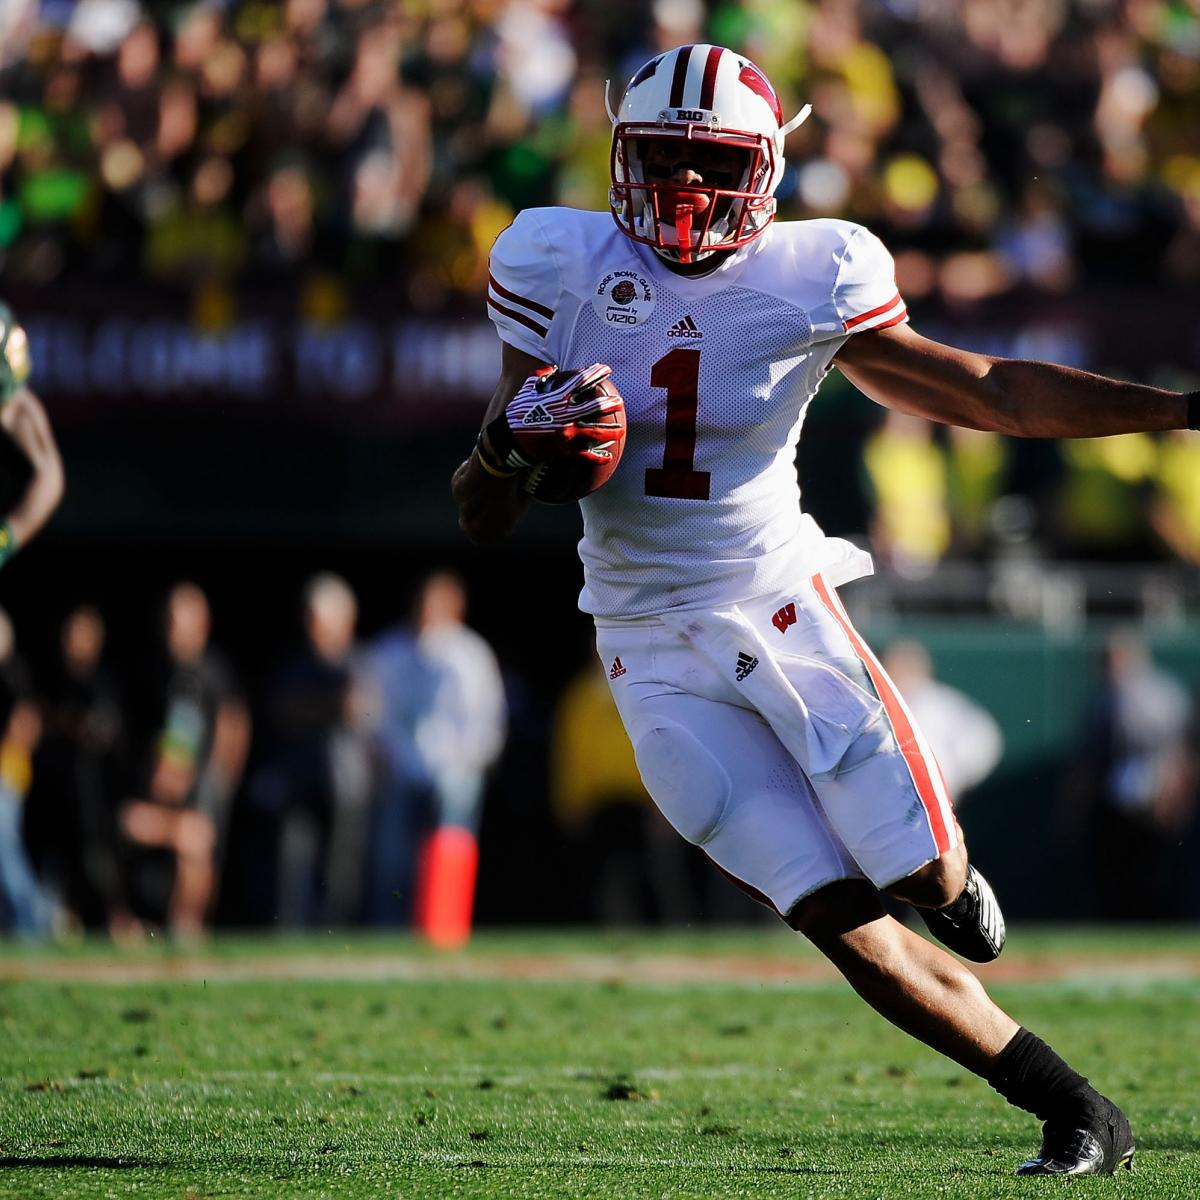 miami dolphins 2012 nfl draft: no receivers yet? no